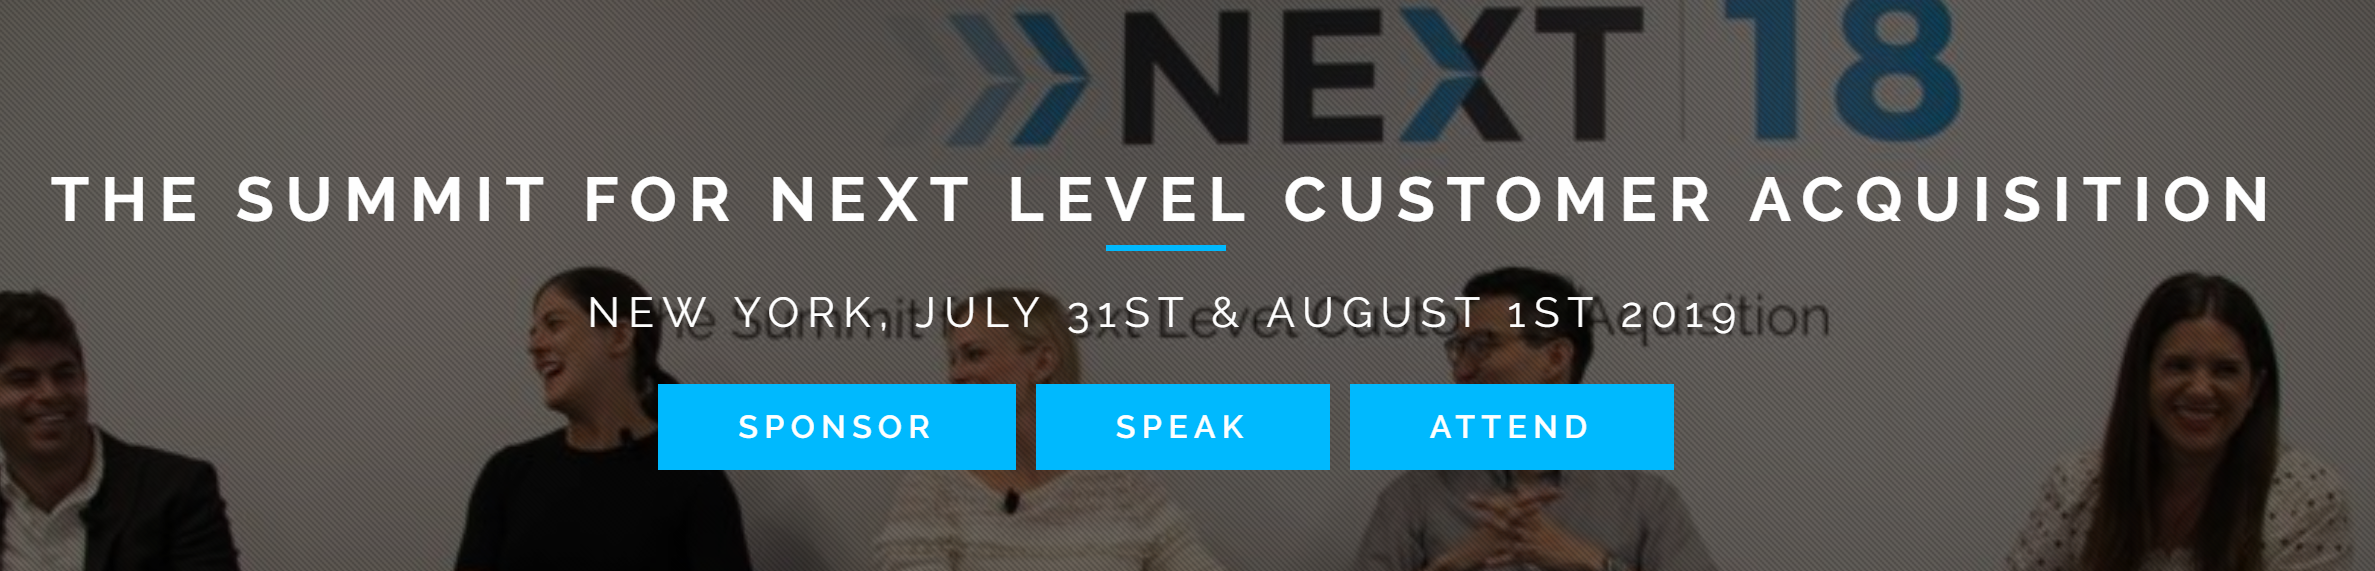 Commerce Next summit 2019